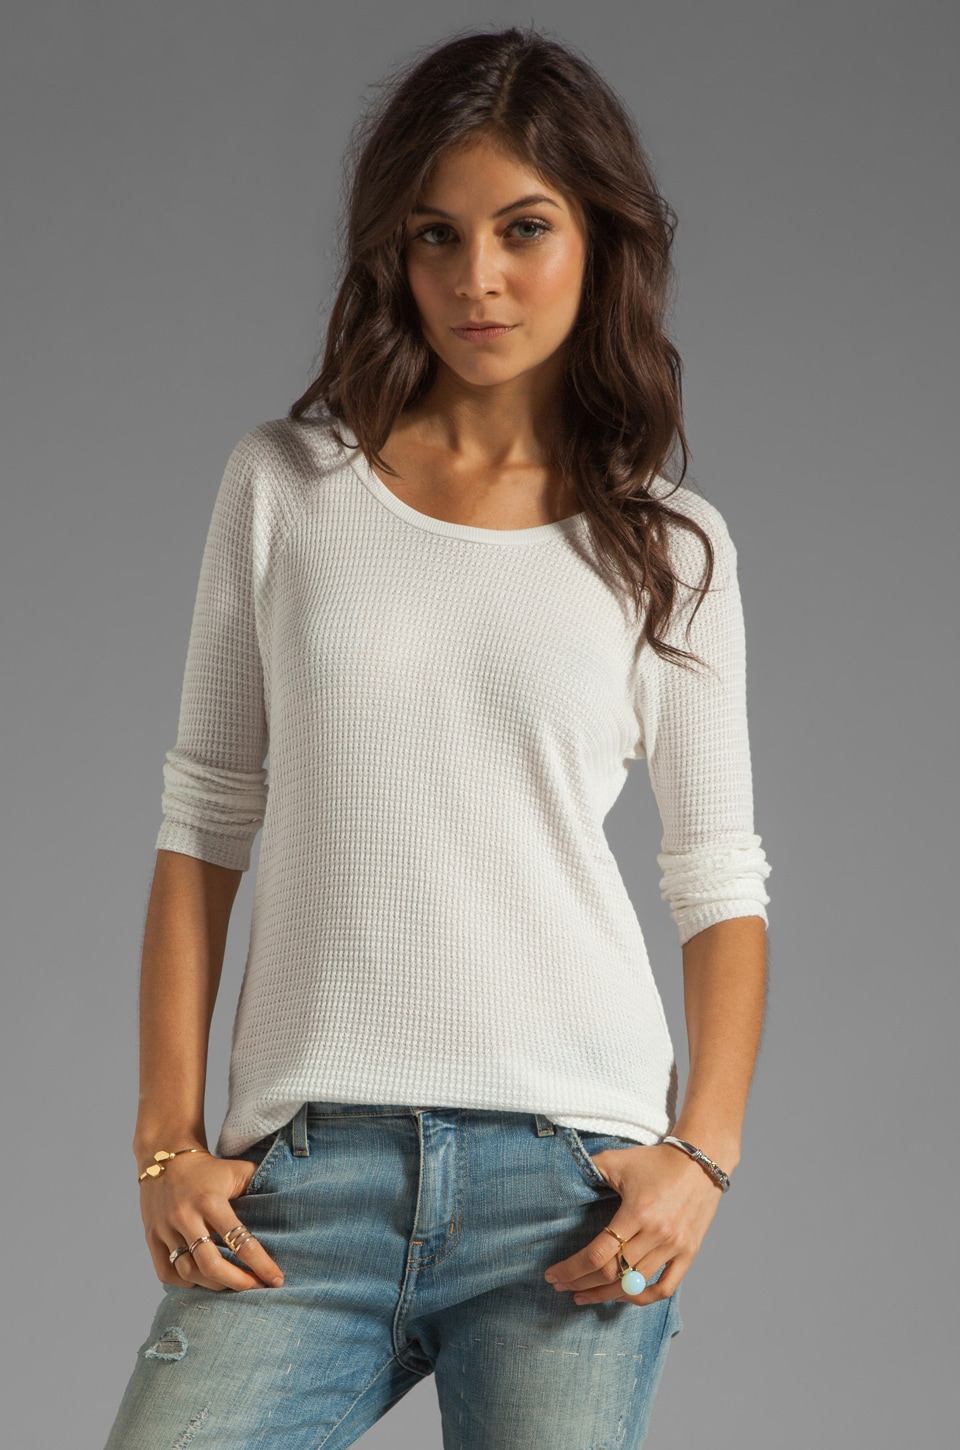 Velvet by Graham & Spencer Harriet Textured Knit Sweater in White